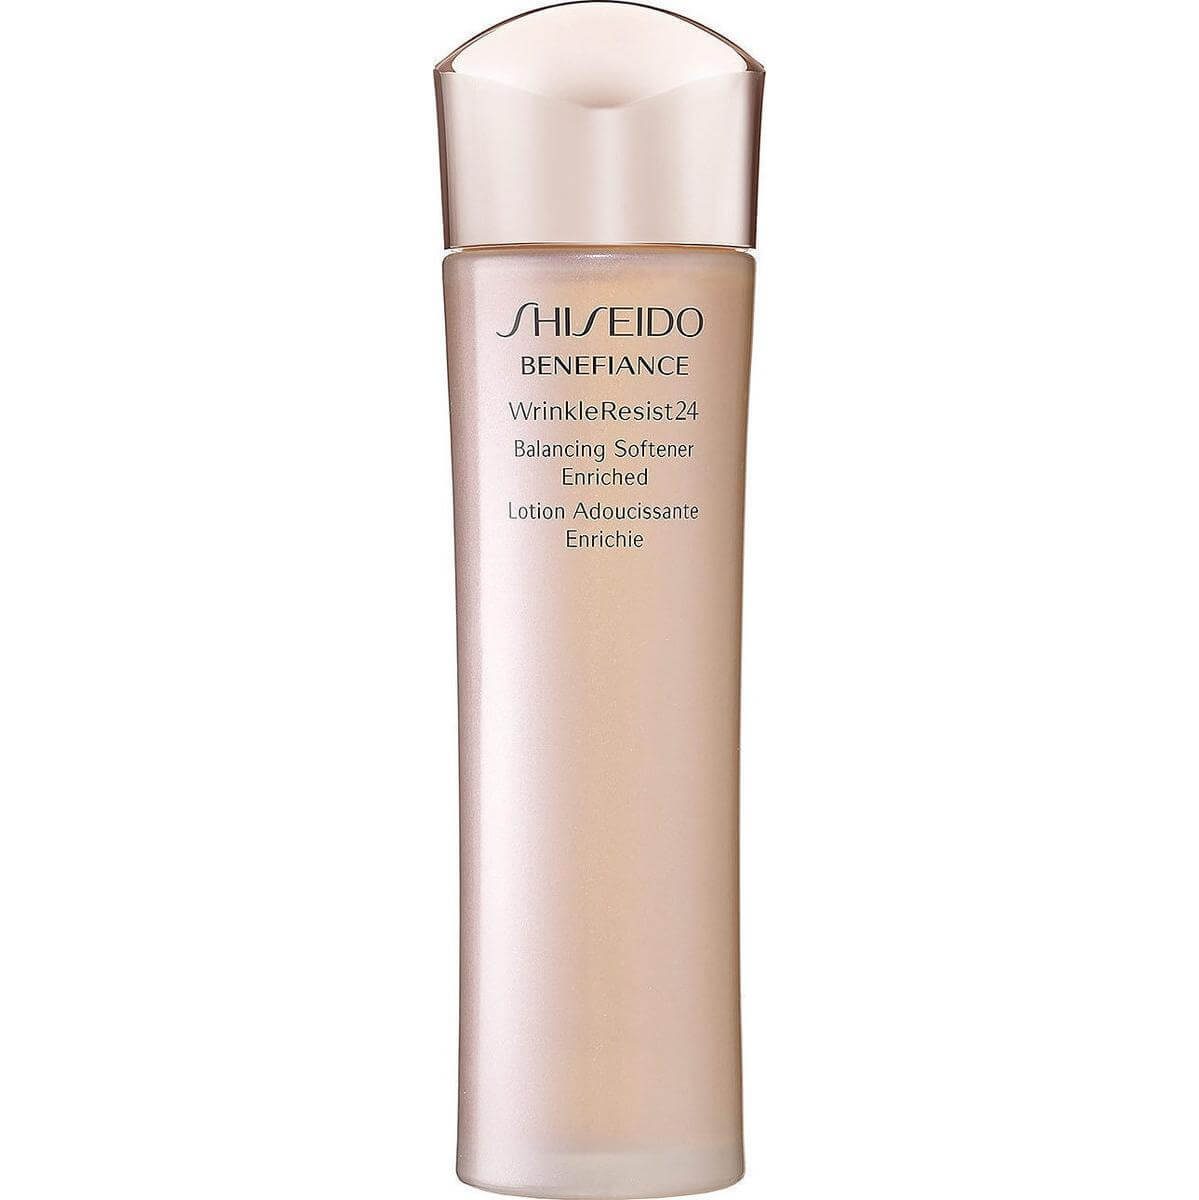 Shiseido Benefiance Wrinkle Resist 24 Balancing Softener 150ml